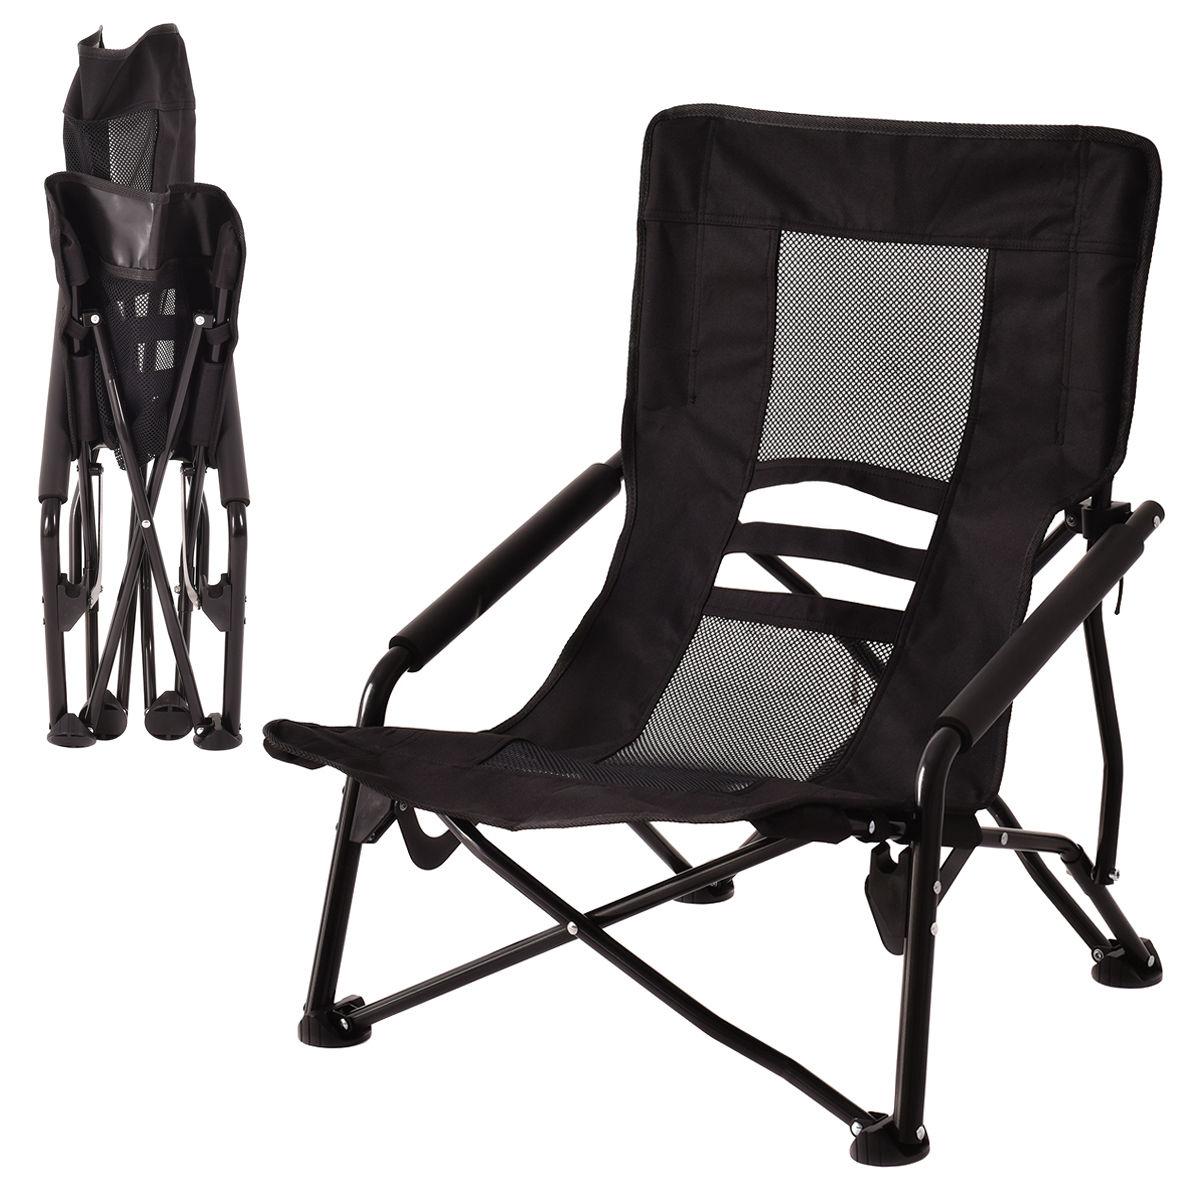 Us 33 83 Costway Outdoor High Back Folding Beach Chair Camping Furniture Portable Mesh Seat Black On Aliexpress